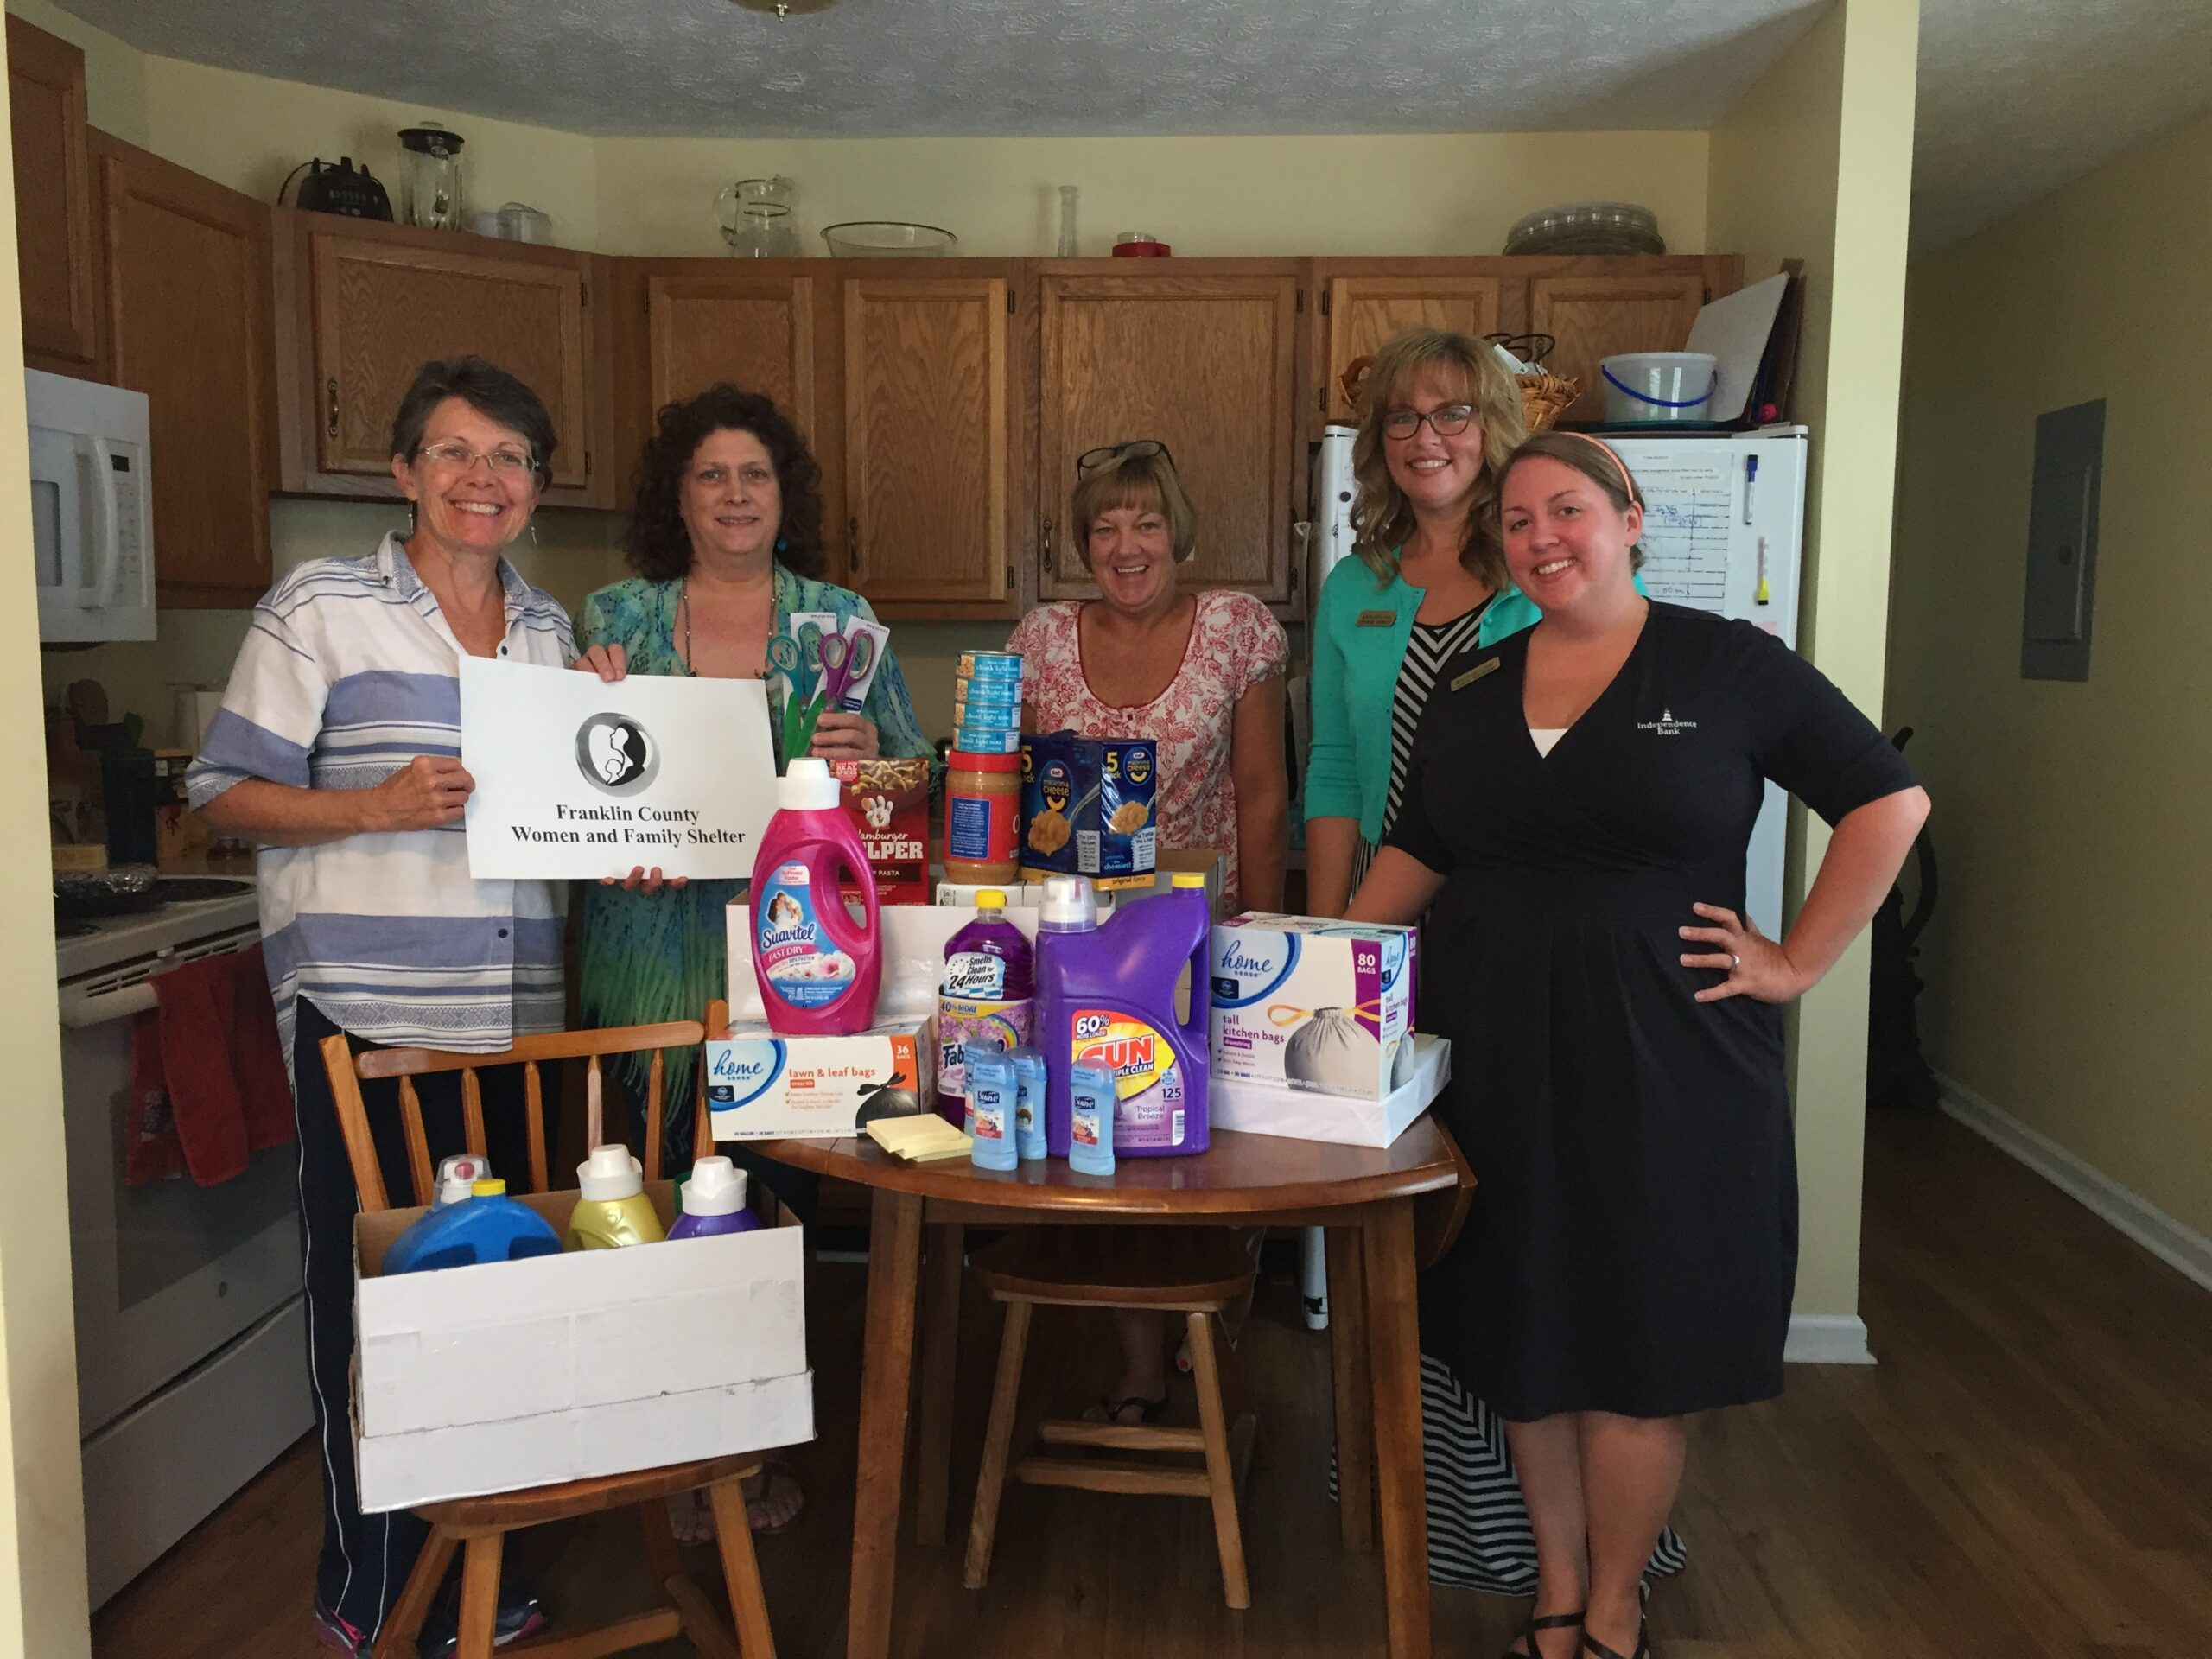 Holly Brunson standing inside of a kitchen donating items to Franklin County Womens Shelter